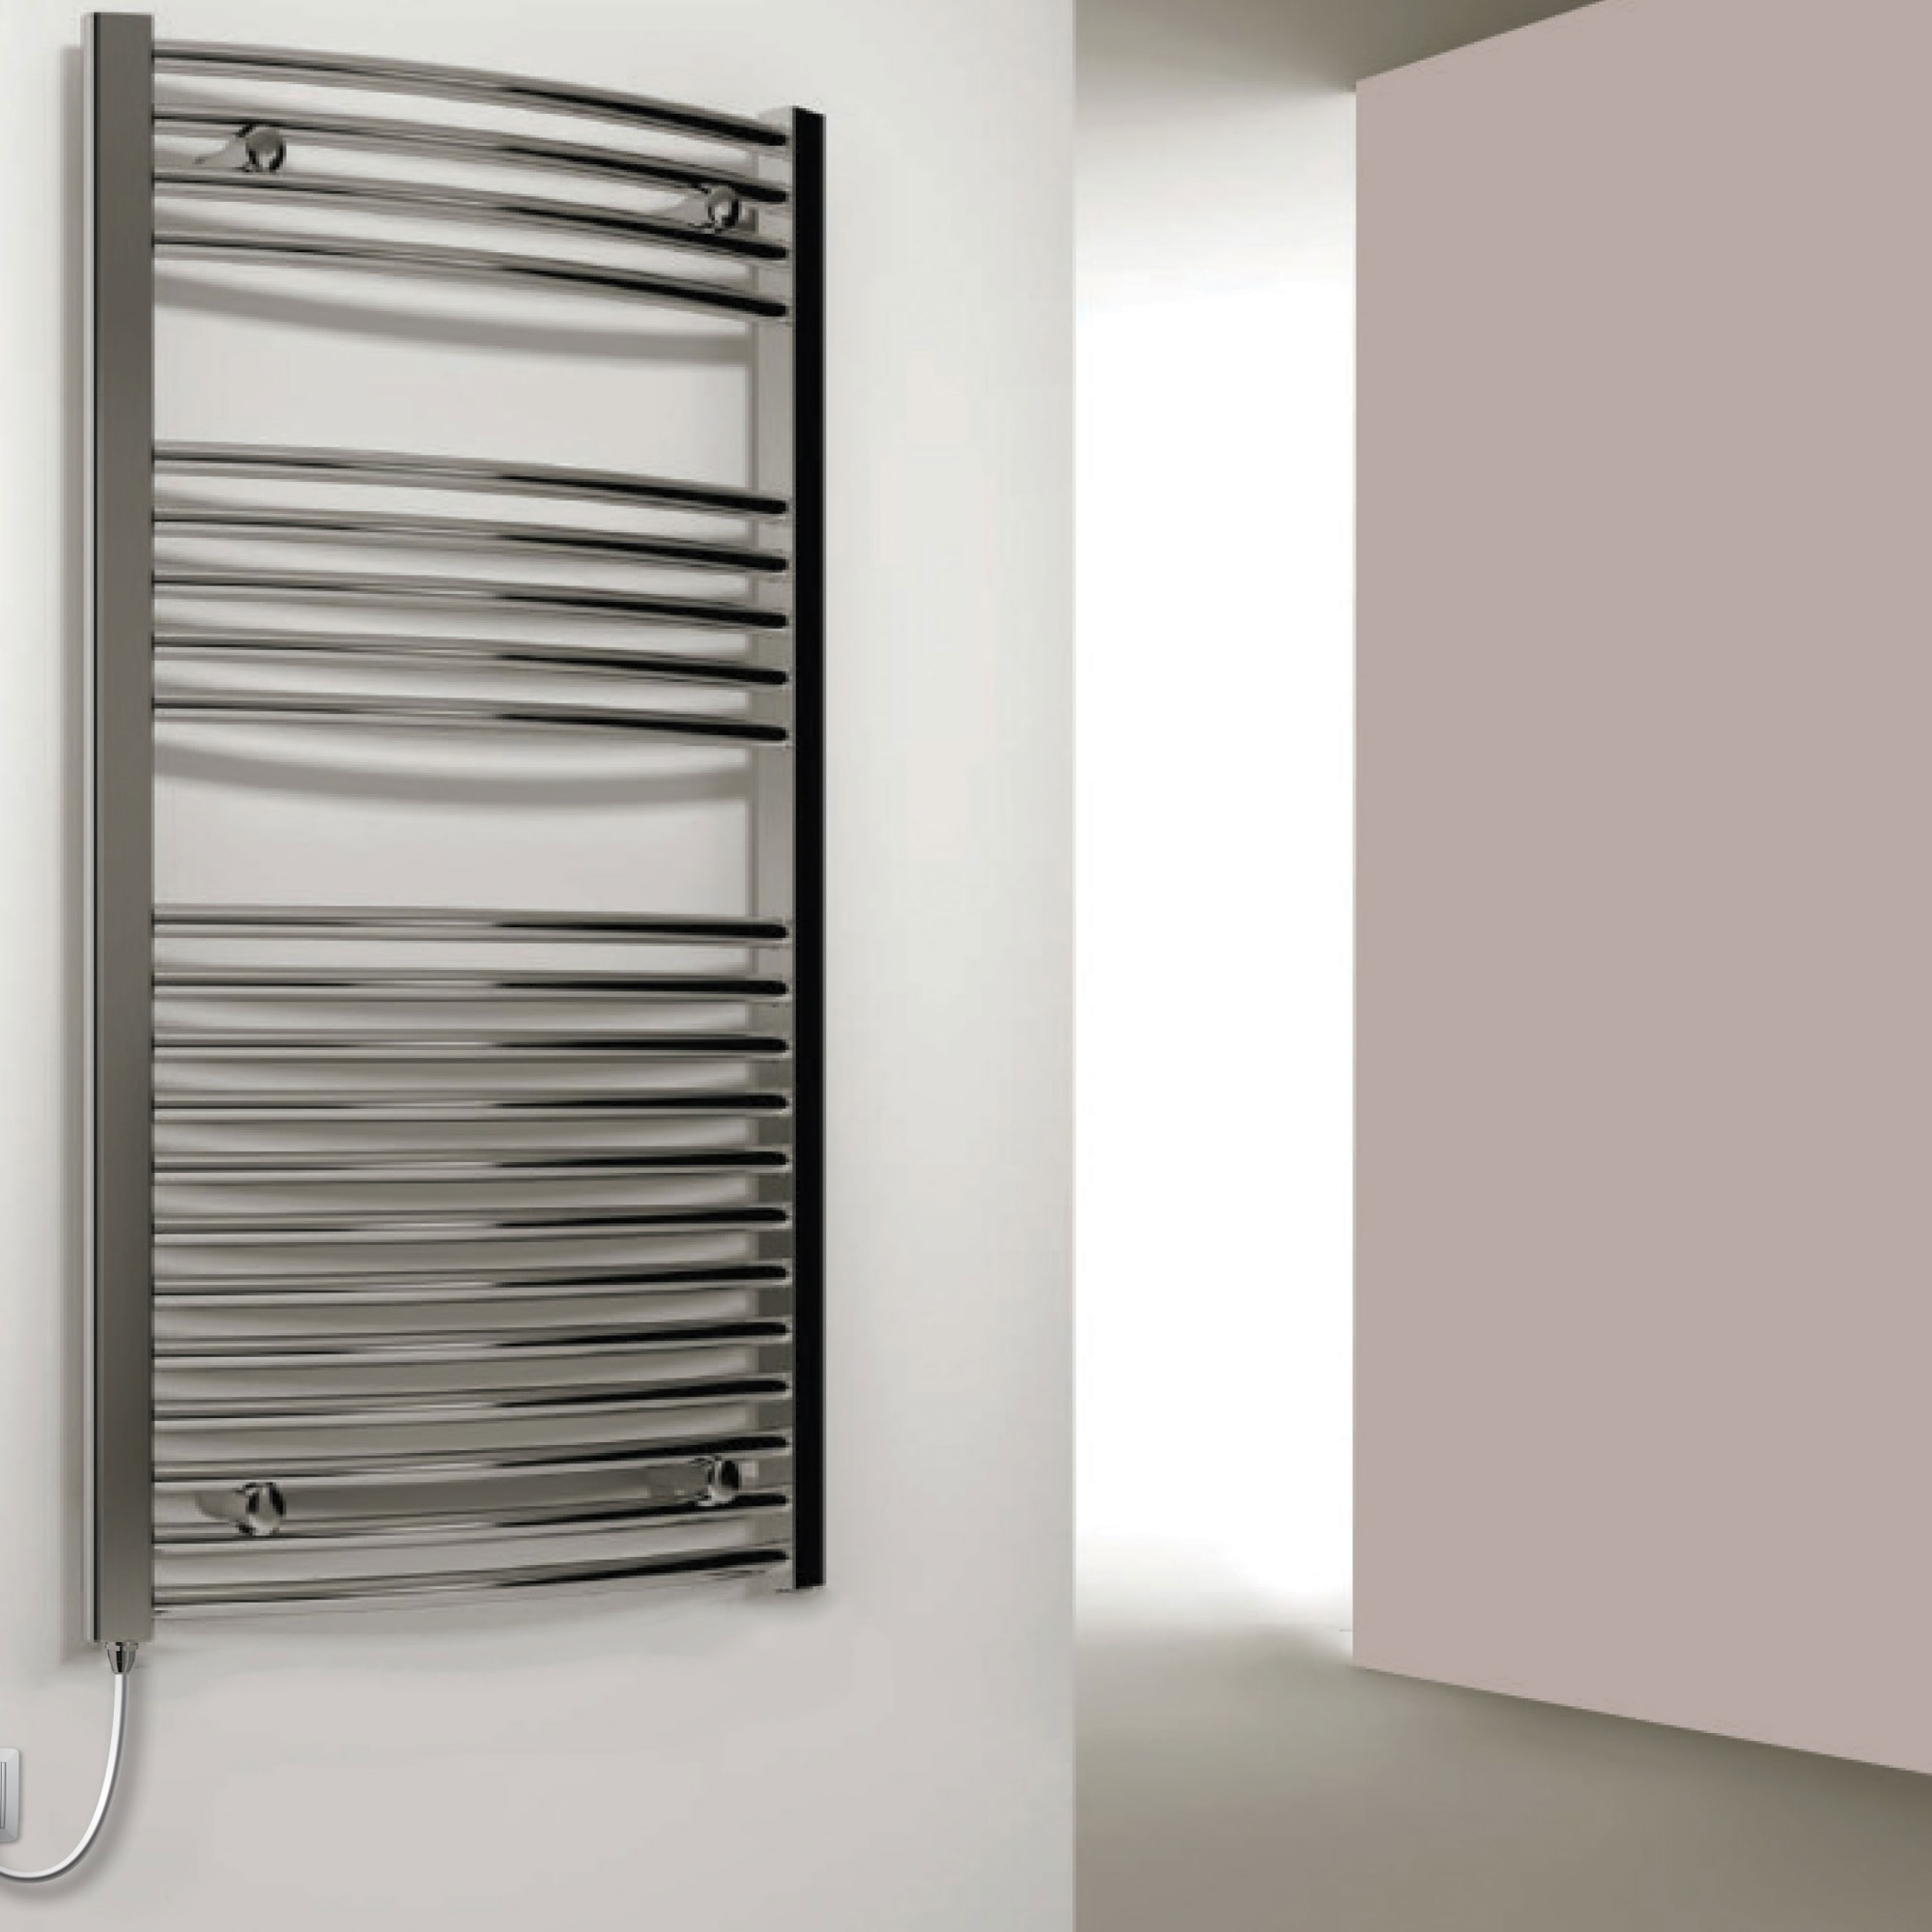 Reina Capo Curved Electric Heated Towel Rail 800mm H x 500mm W Chrome